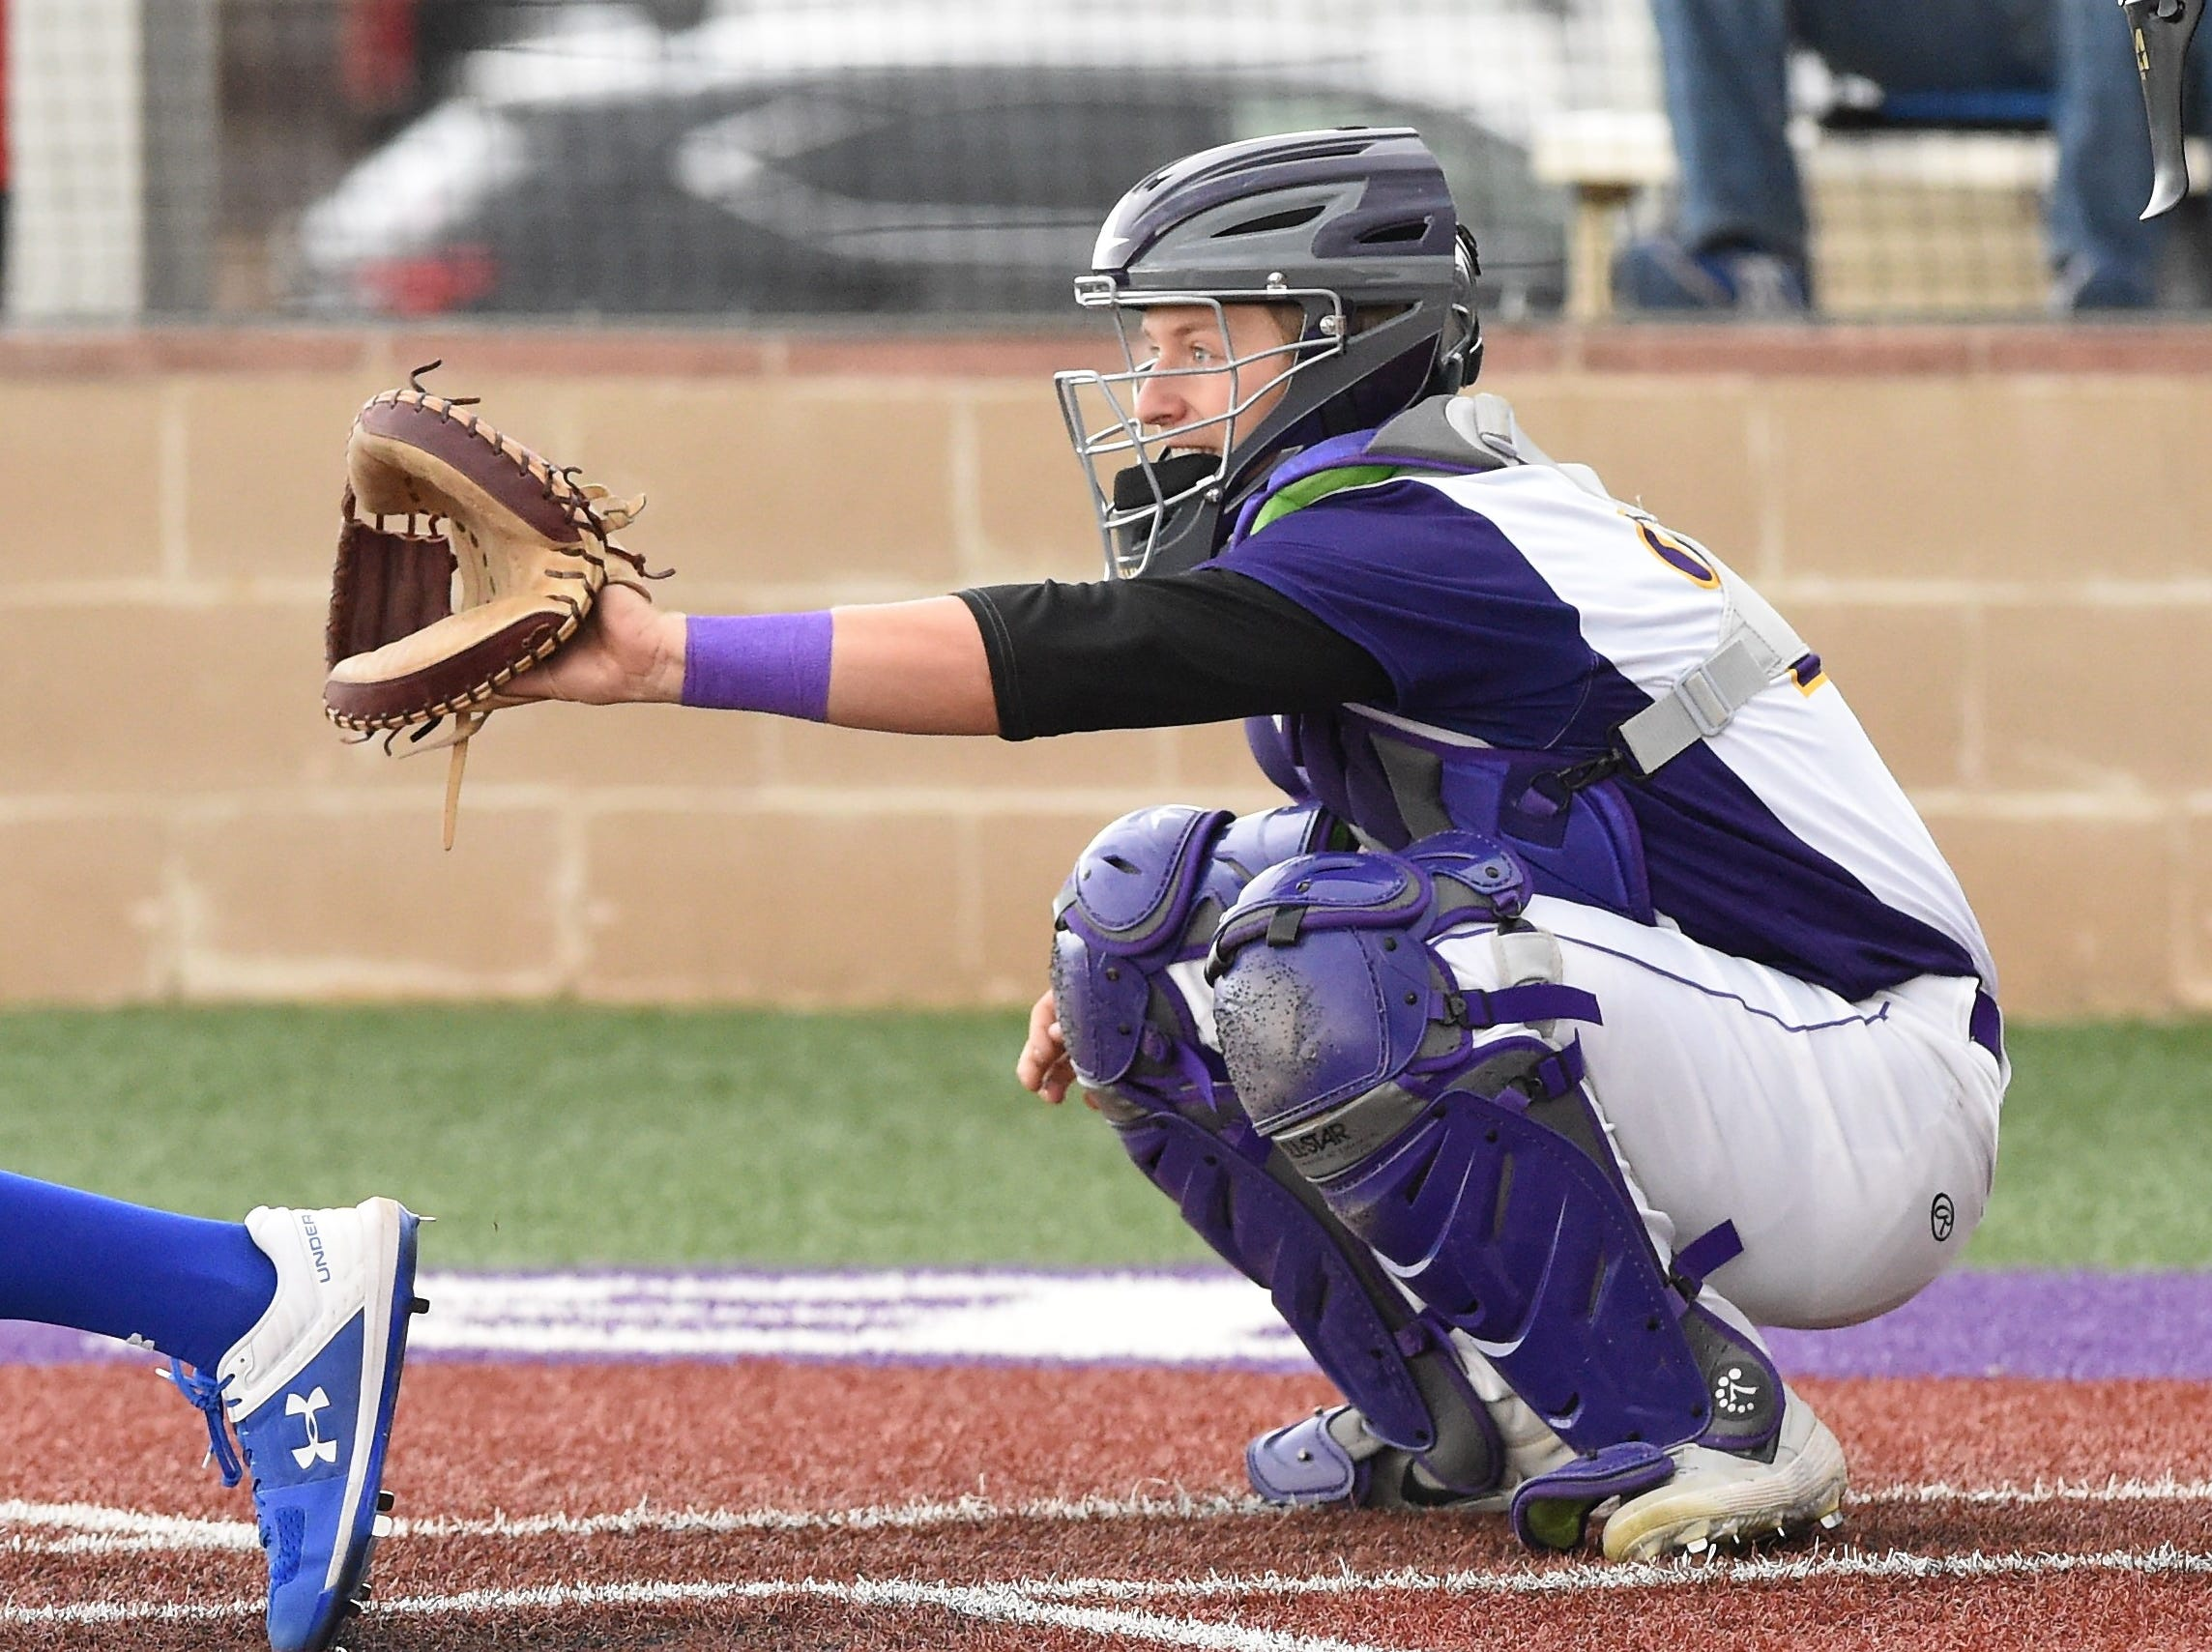 Wylie catcher Caleb Munton (25) gets set behind the plate against Cooper at Bulldog Field on Friday, April 12, 2019.